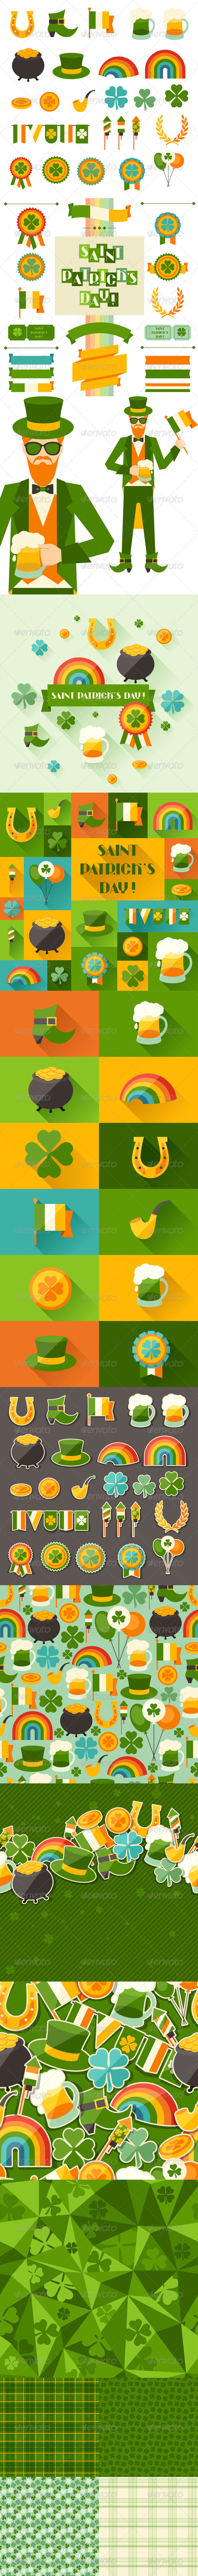 GraphicRiver Saint Patrick s Day Backgrounds and Icons 6378719